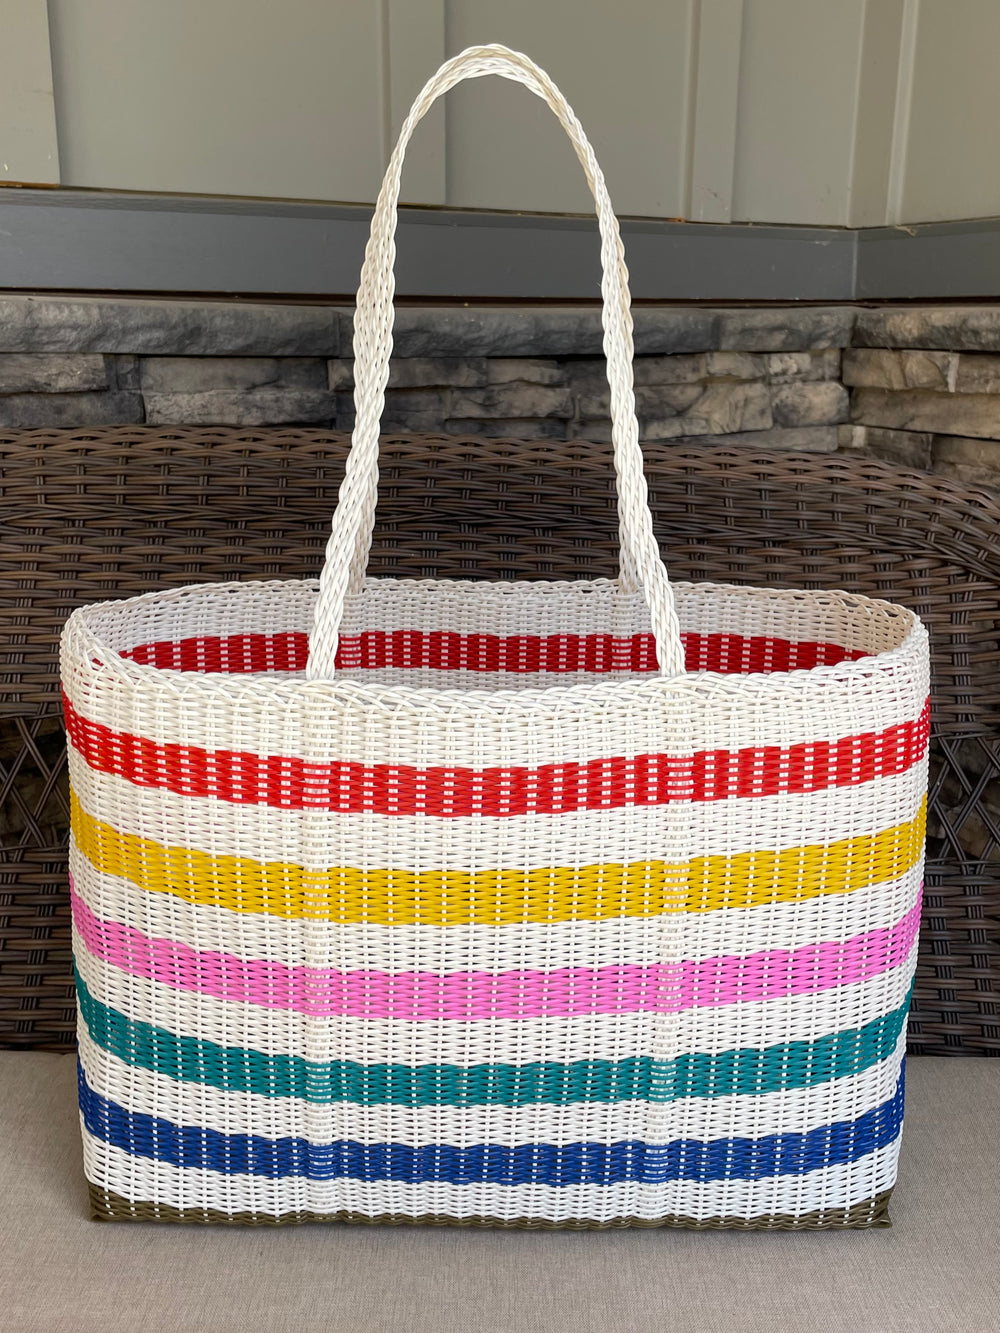 Pack Mule Large Basket Tote by Sueno Canastas from Guatemala